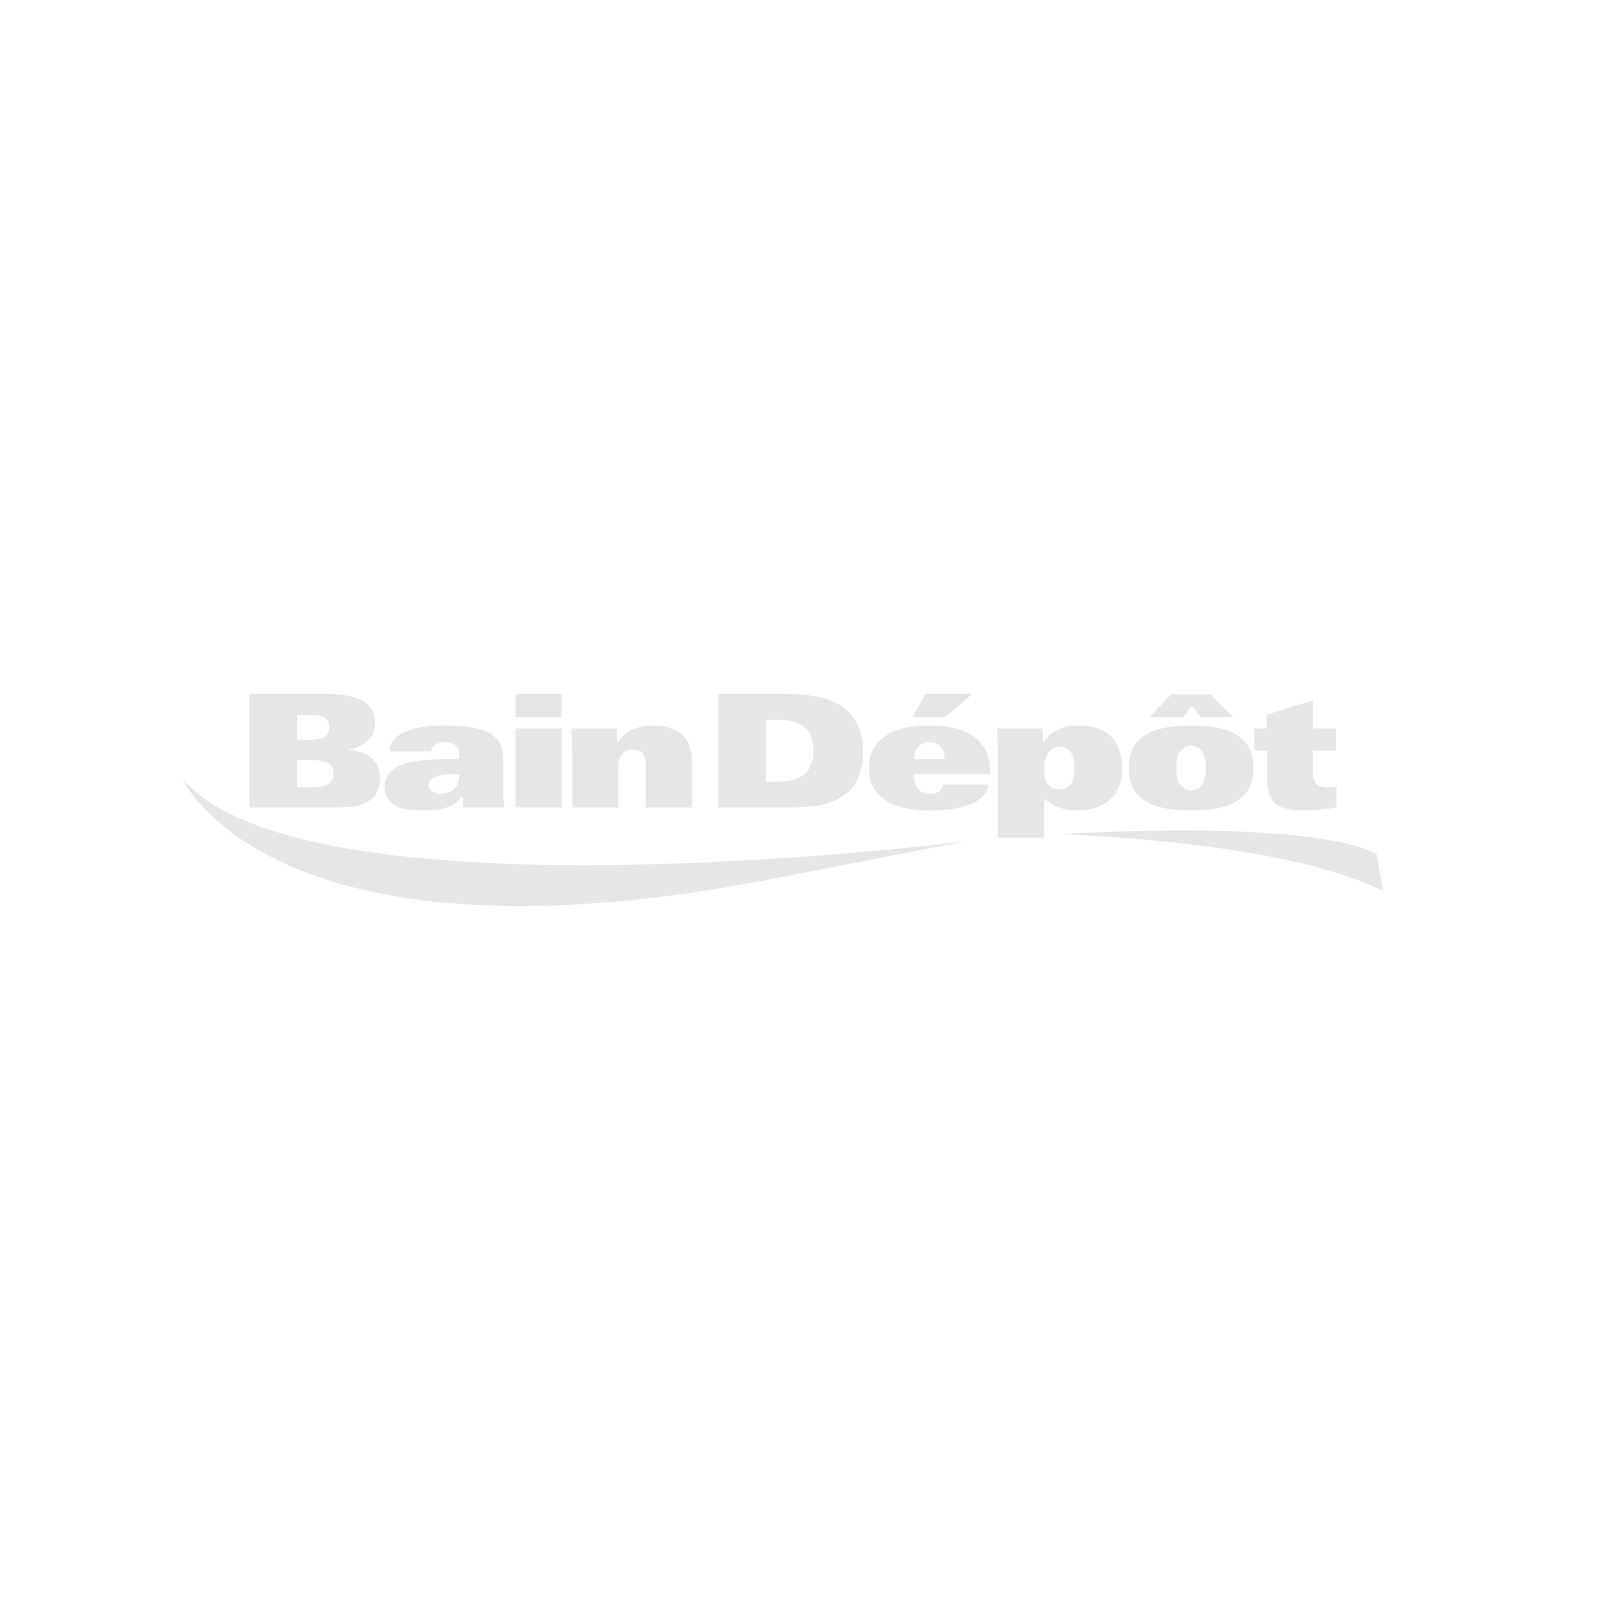 "30"" x 15"" x 13"" One-door horizontal wall kitchen cabinet"